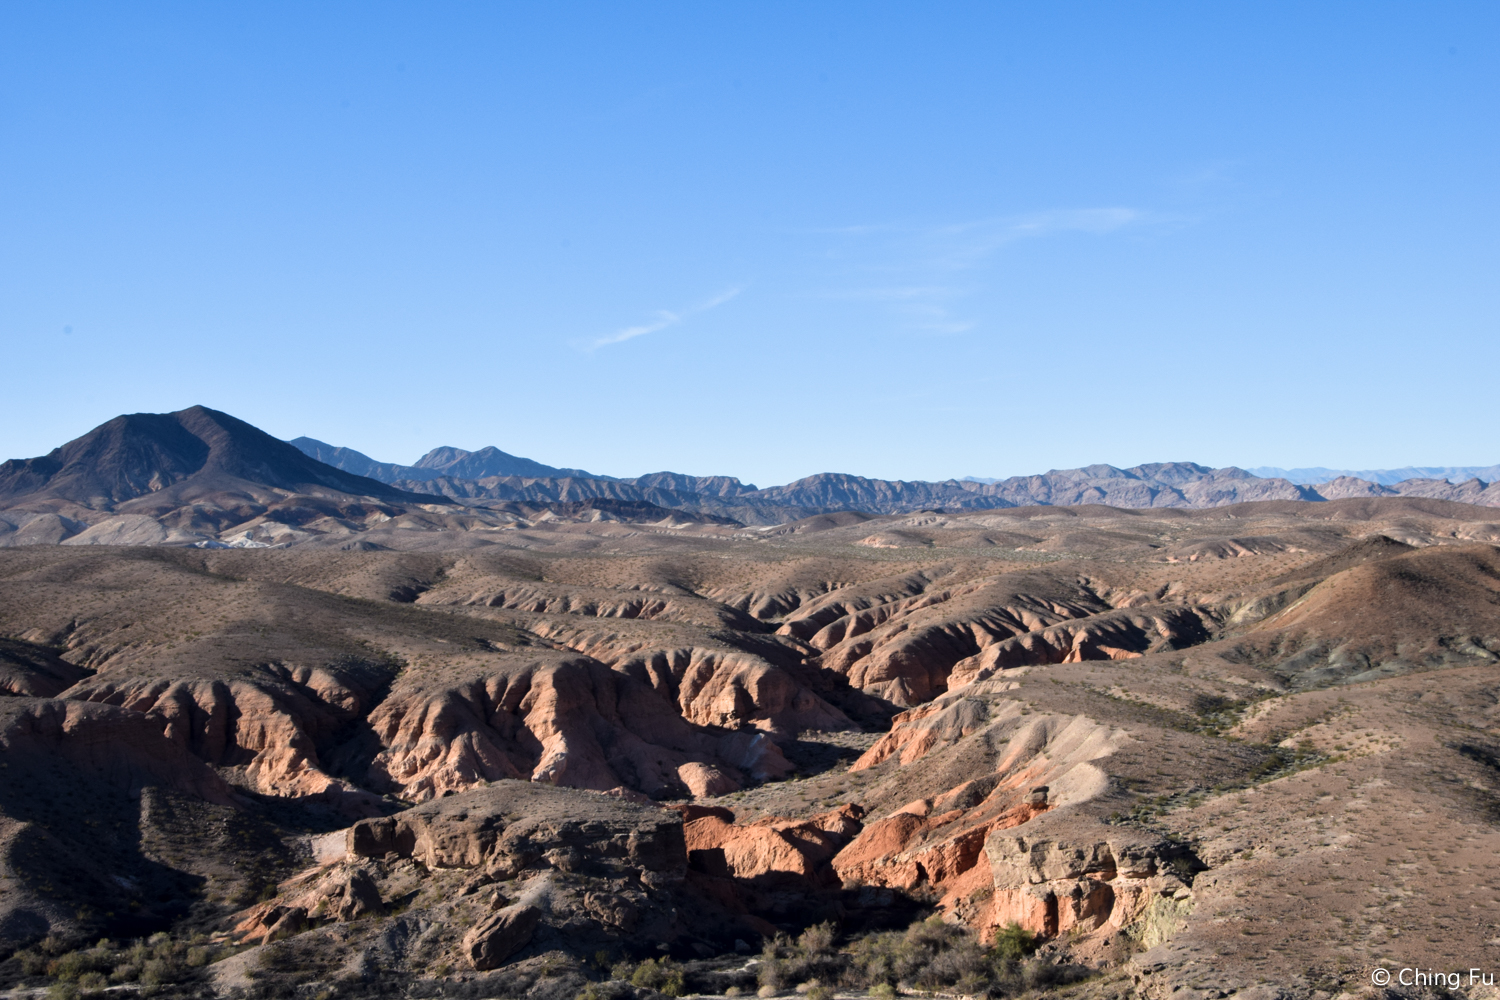 Looking out at Lake Mead National Recreation Area.